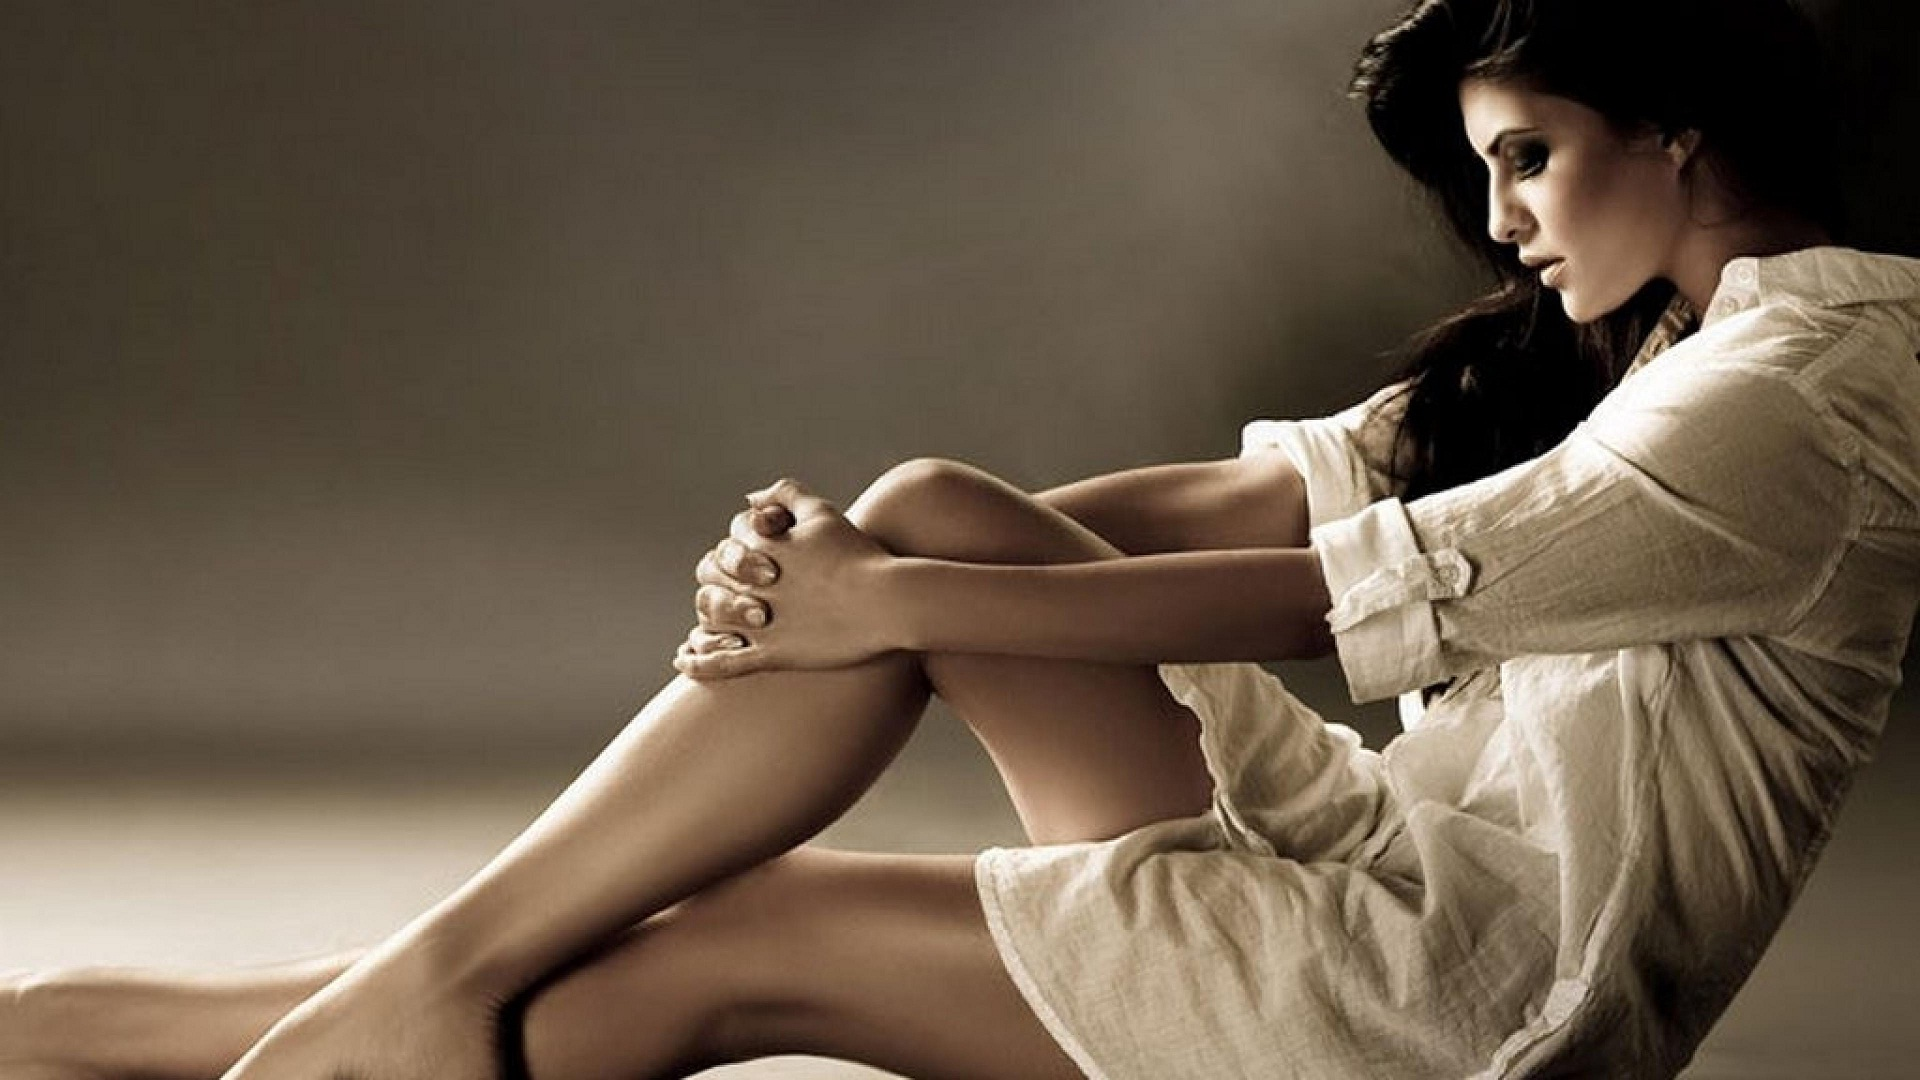 top 10 hottest legs in bollywood - hot legs of bollywood actress